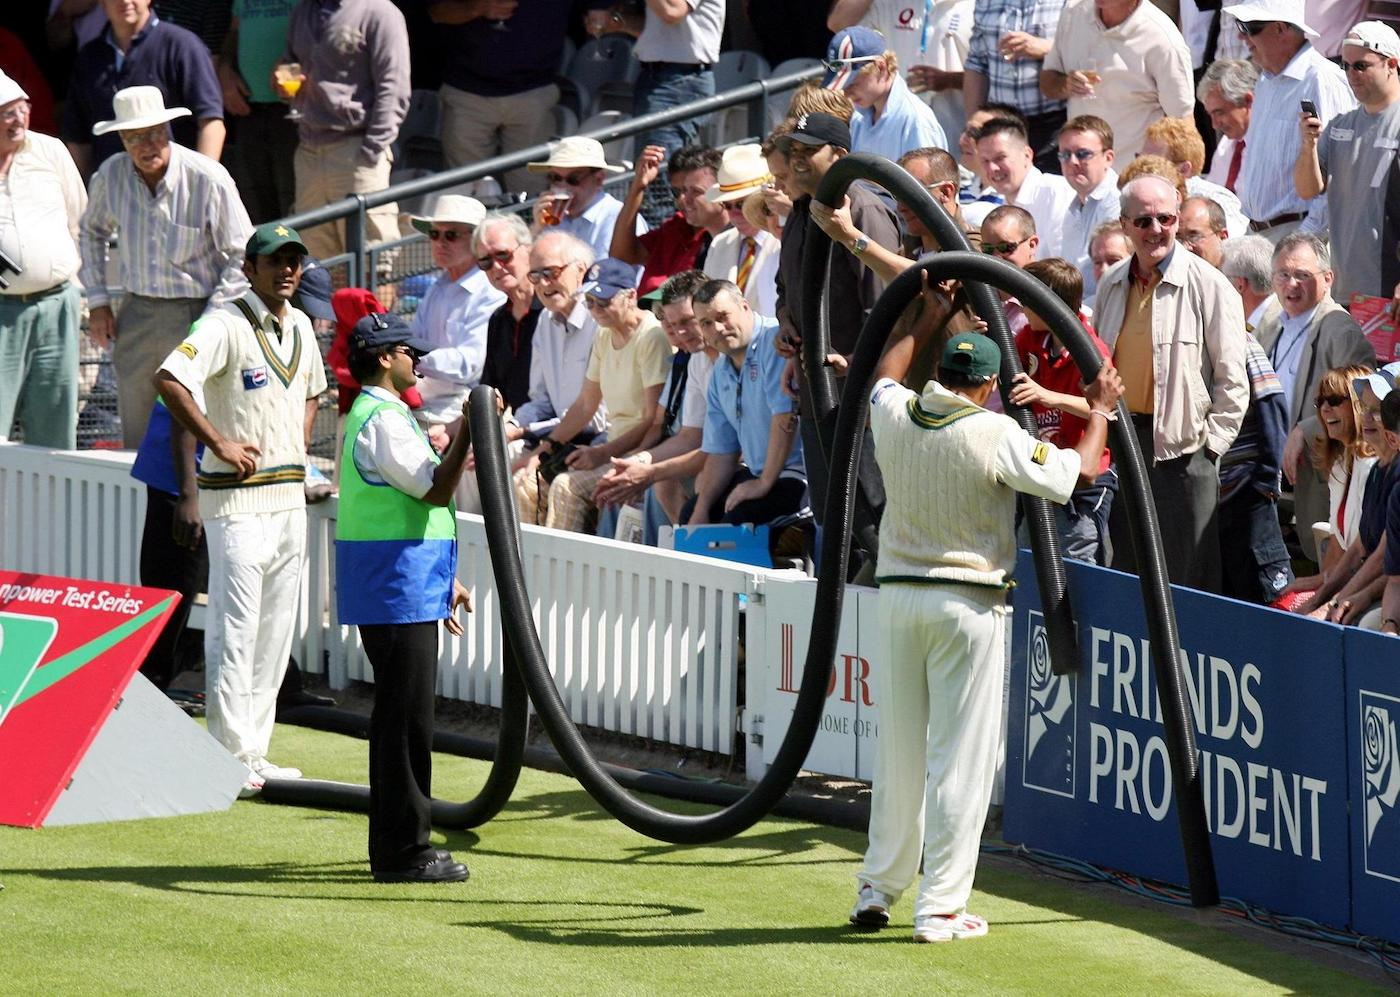 Danish Kaneria enlists the help of spectators to flush the ball out of a watering hose